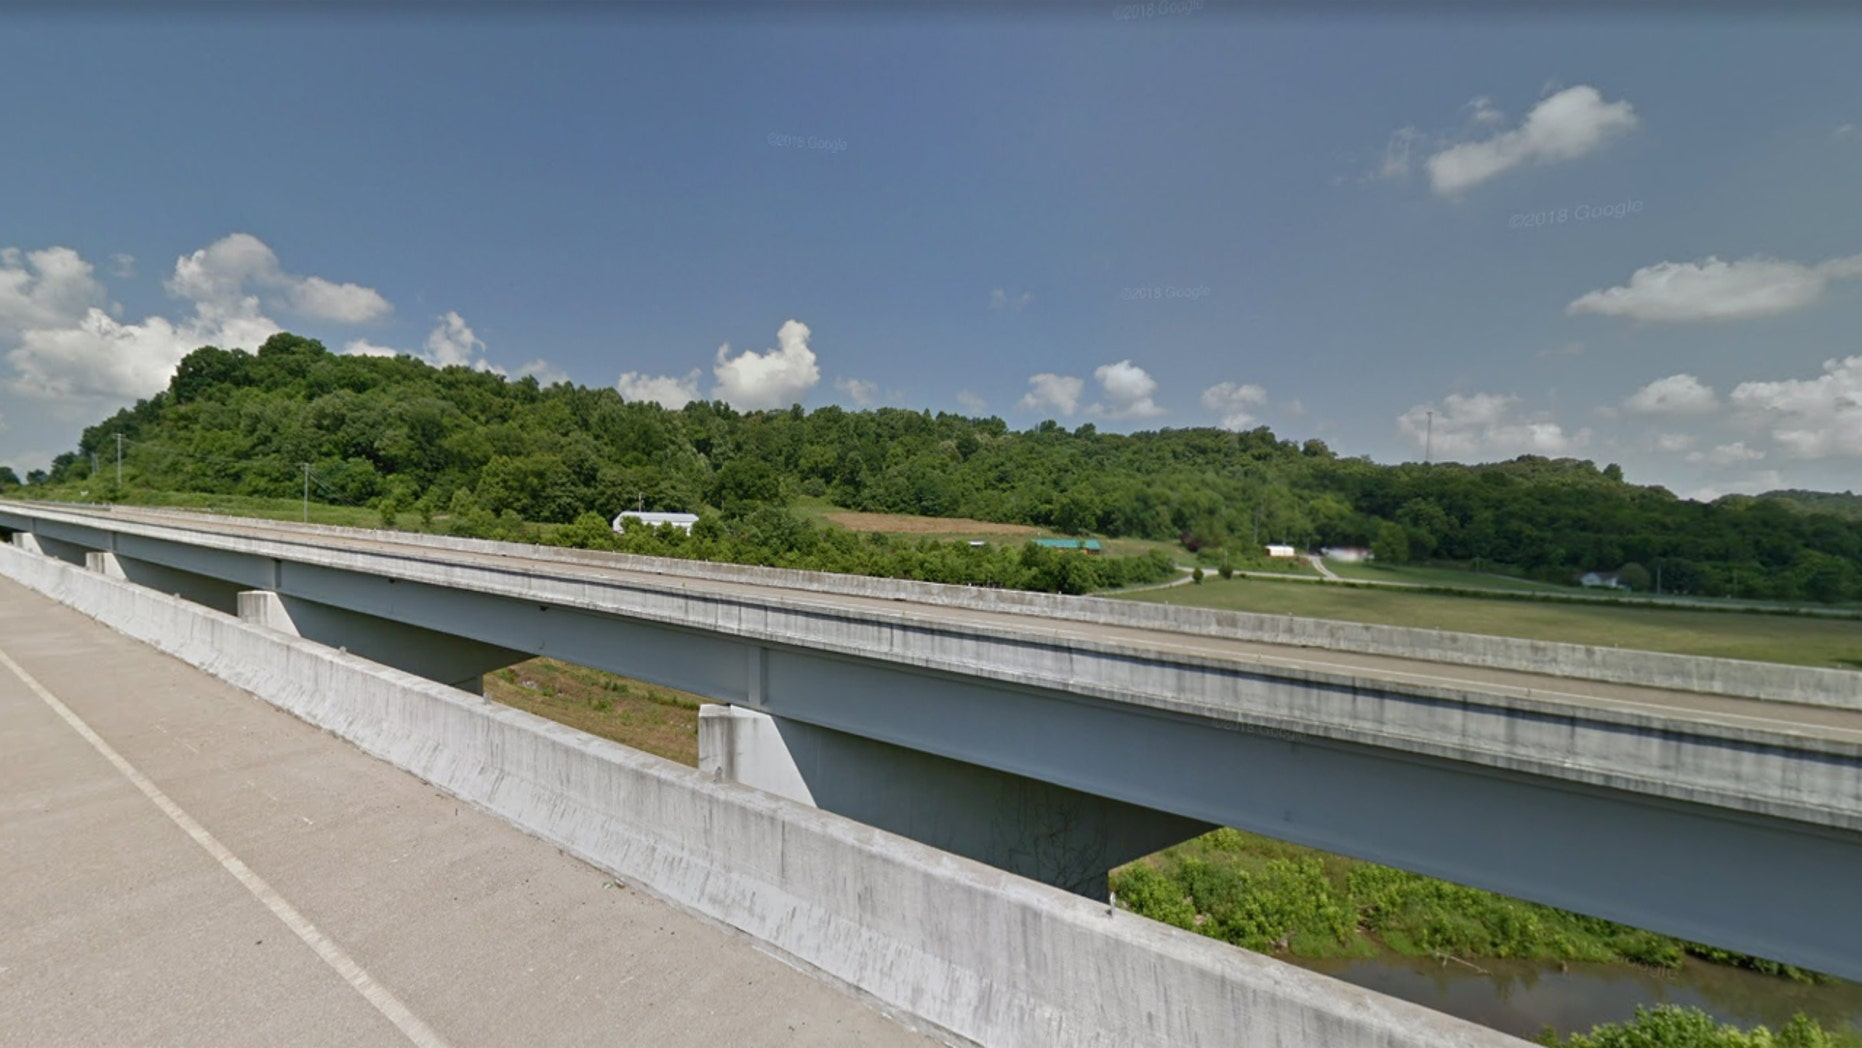 A 30-year-old man died Thursday after falling off a bridge in Tennessee while he was waiting for someone to change his tire.